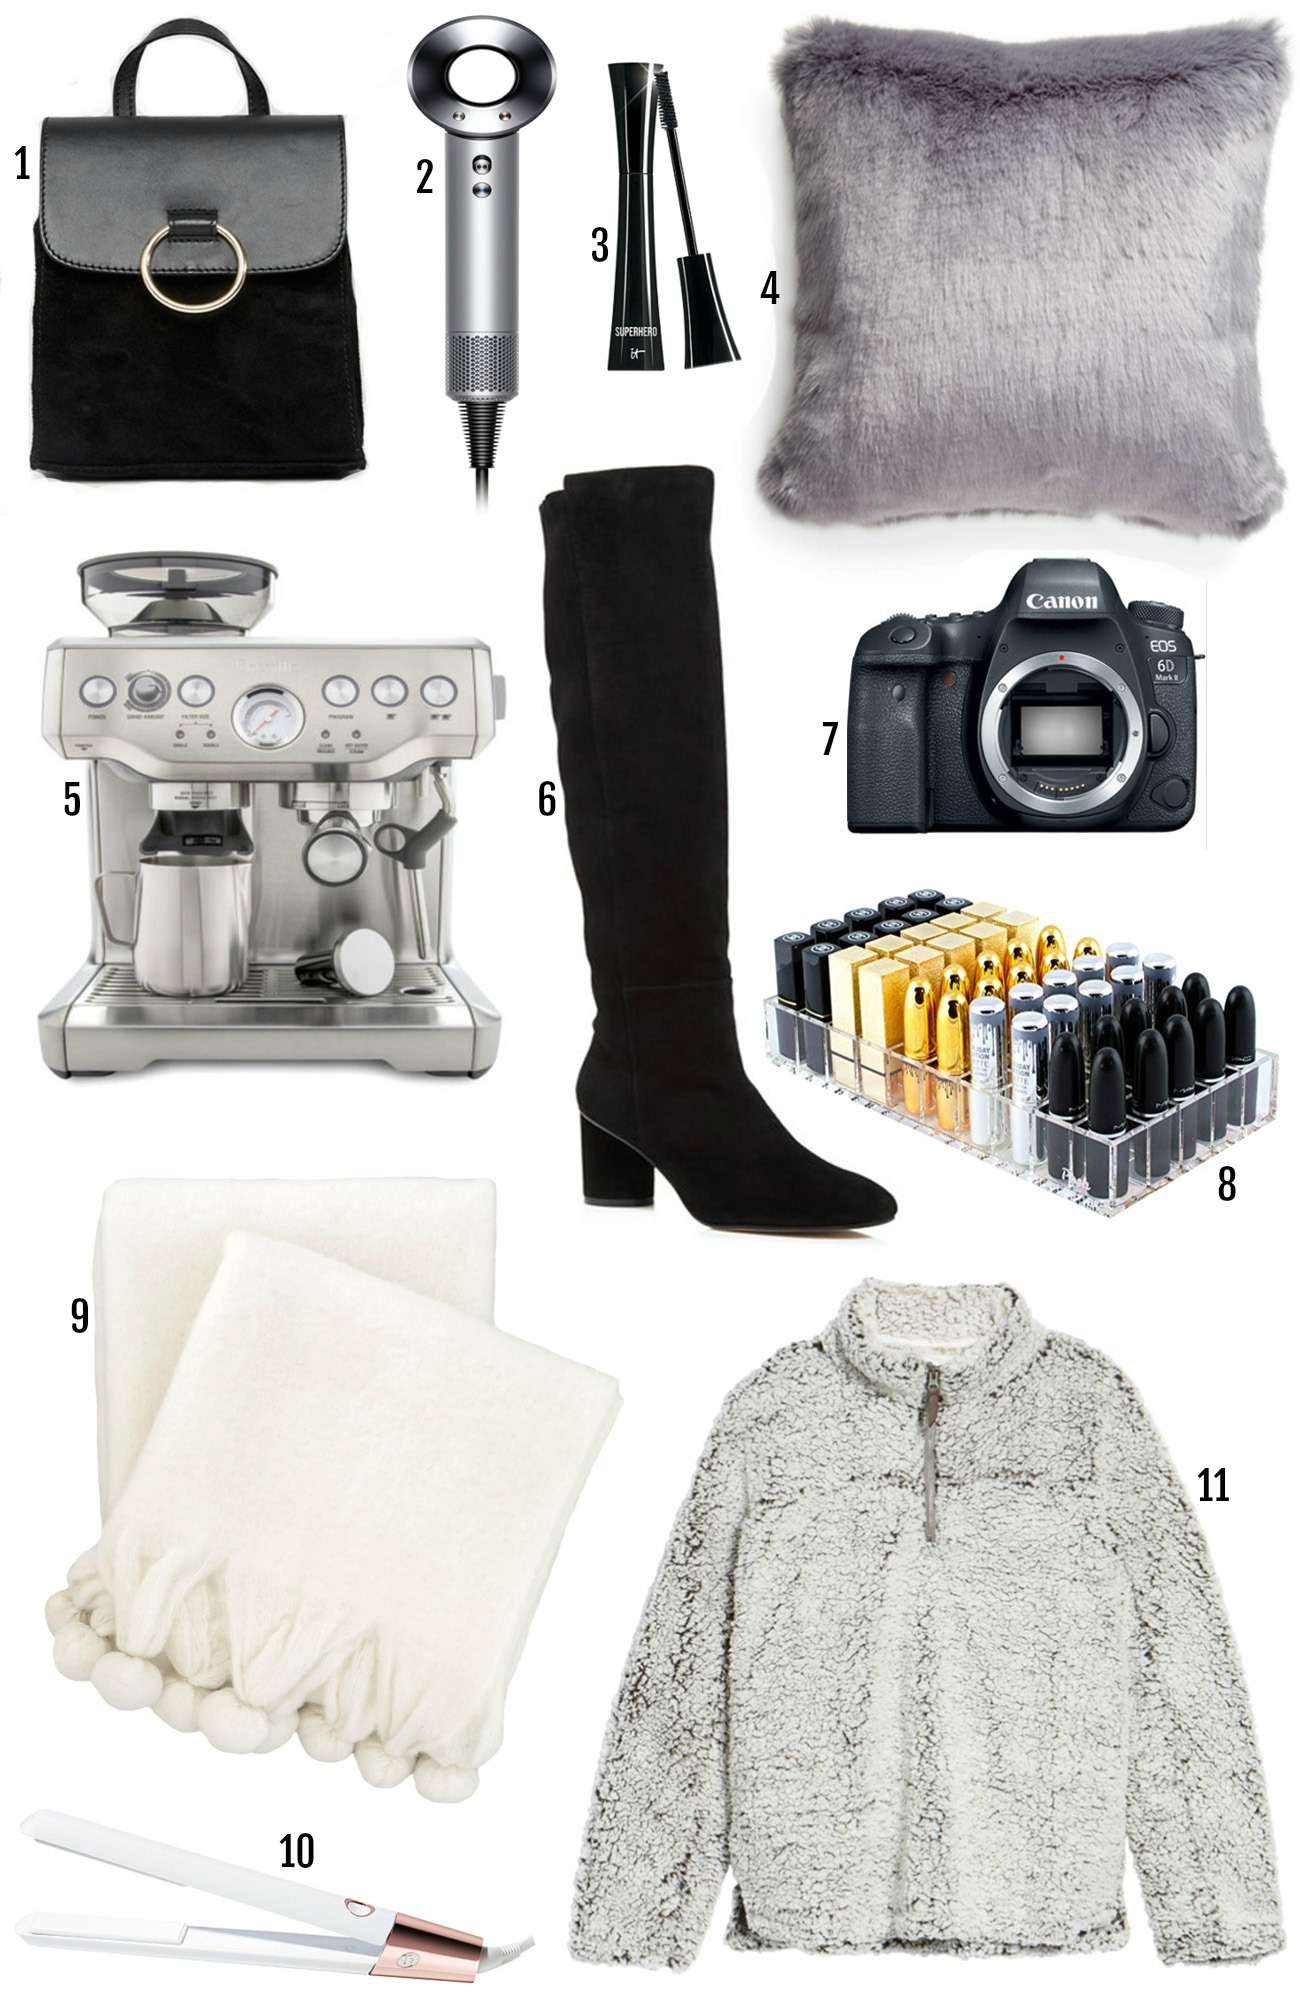 The Best Black Friday Deals   Mash Elle beauty blogger   2018 Cyber Deals   Black Friday   Christmas Gifts   sweater   makeup organizer   coffee press